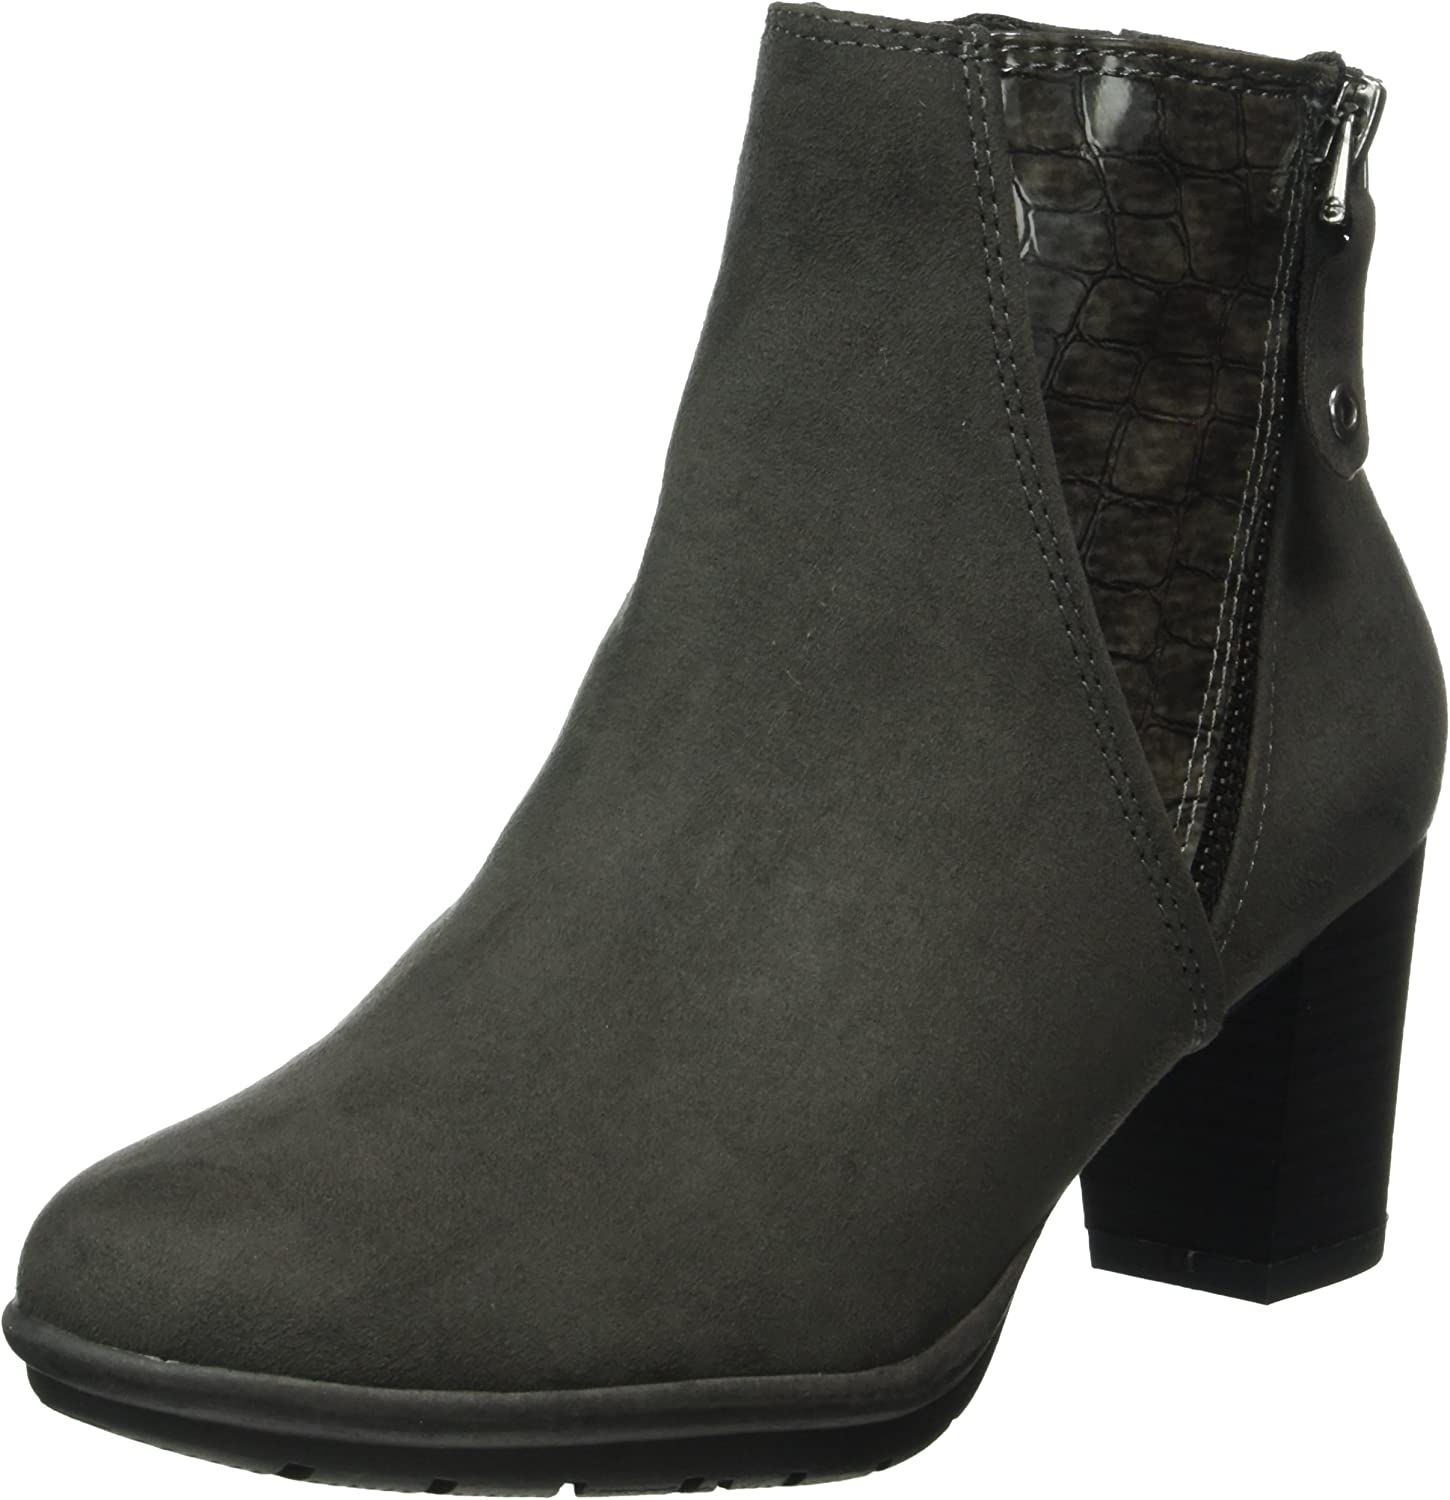 Marco Tozzi Kvinnors Anthracite grå Mid Heel Ankle Boot Boot Boot  outlet butik